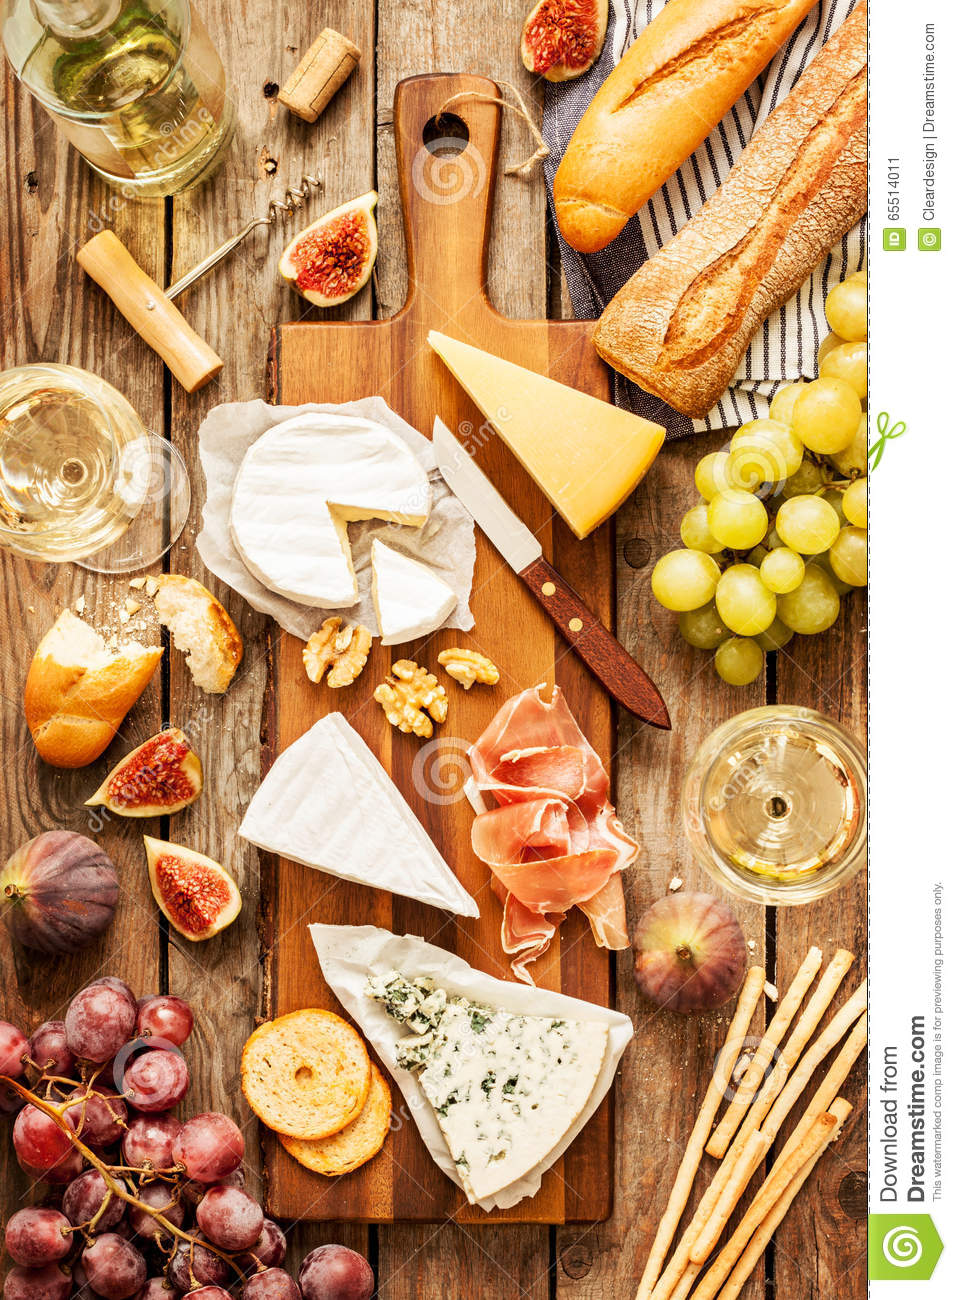 Different Kinds Of Cheeses Wine Baguette Fruits And Snacks Stock